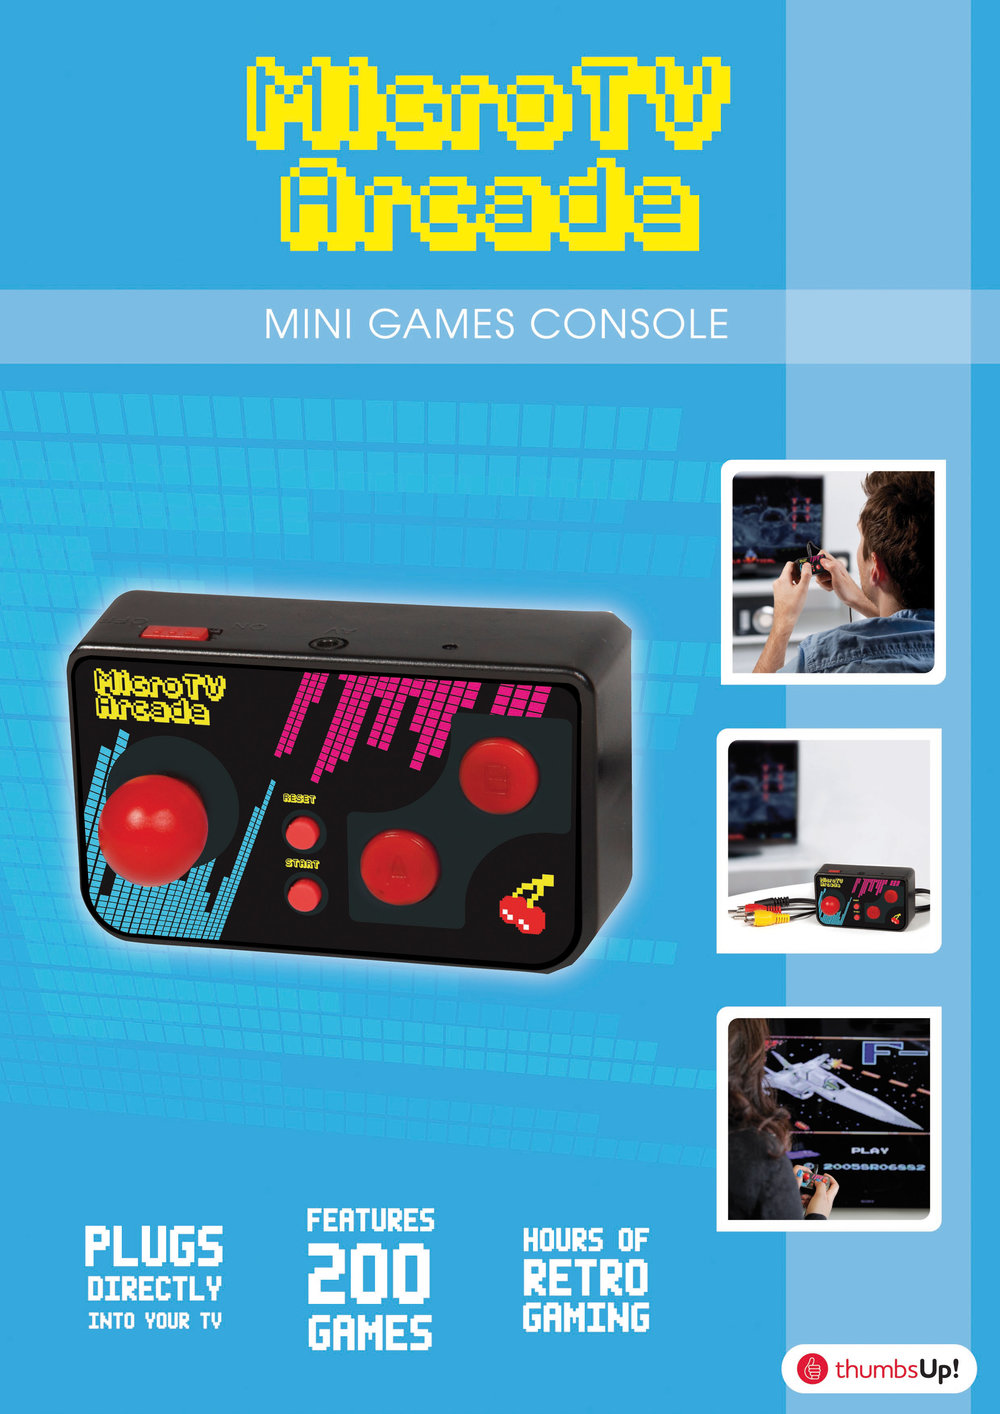 thumbs-up-microtv-arcade-mini-games-console_scorpio-worldwide_travel-retail-distributor